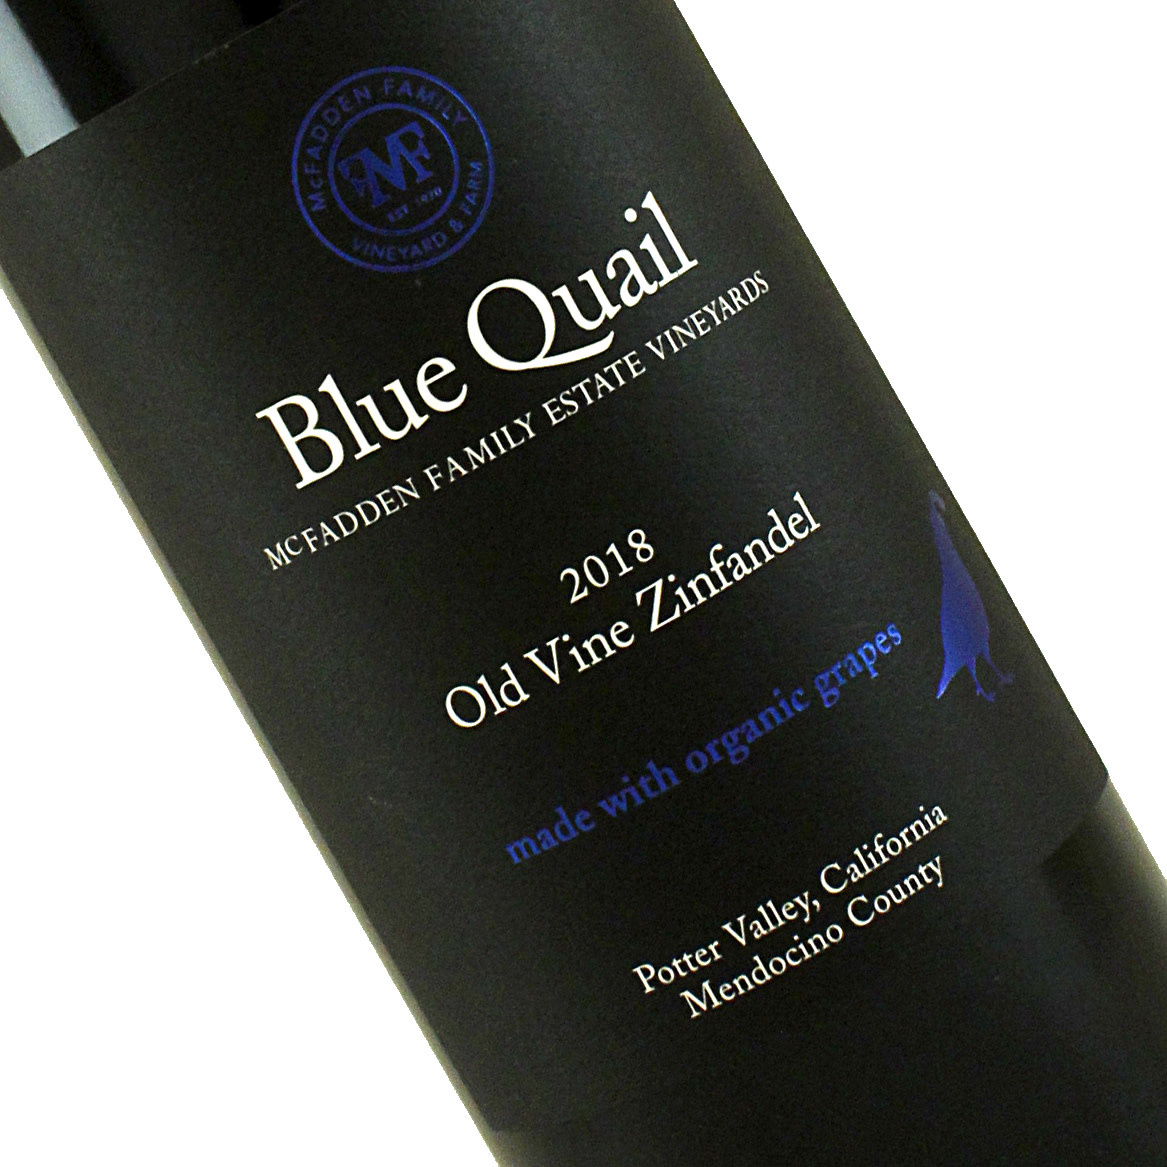 Blue Quail 2018 Old Vine Zinfandel Potter Valley, Mendocino County